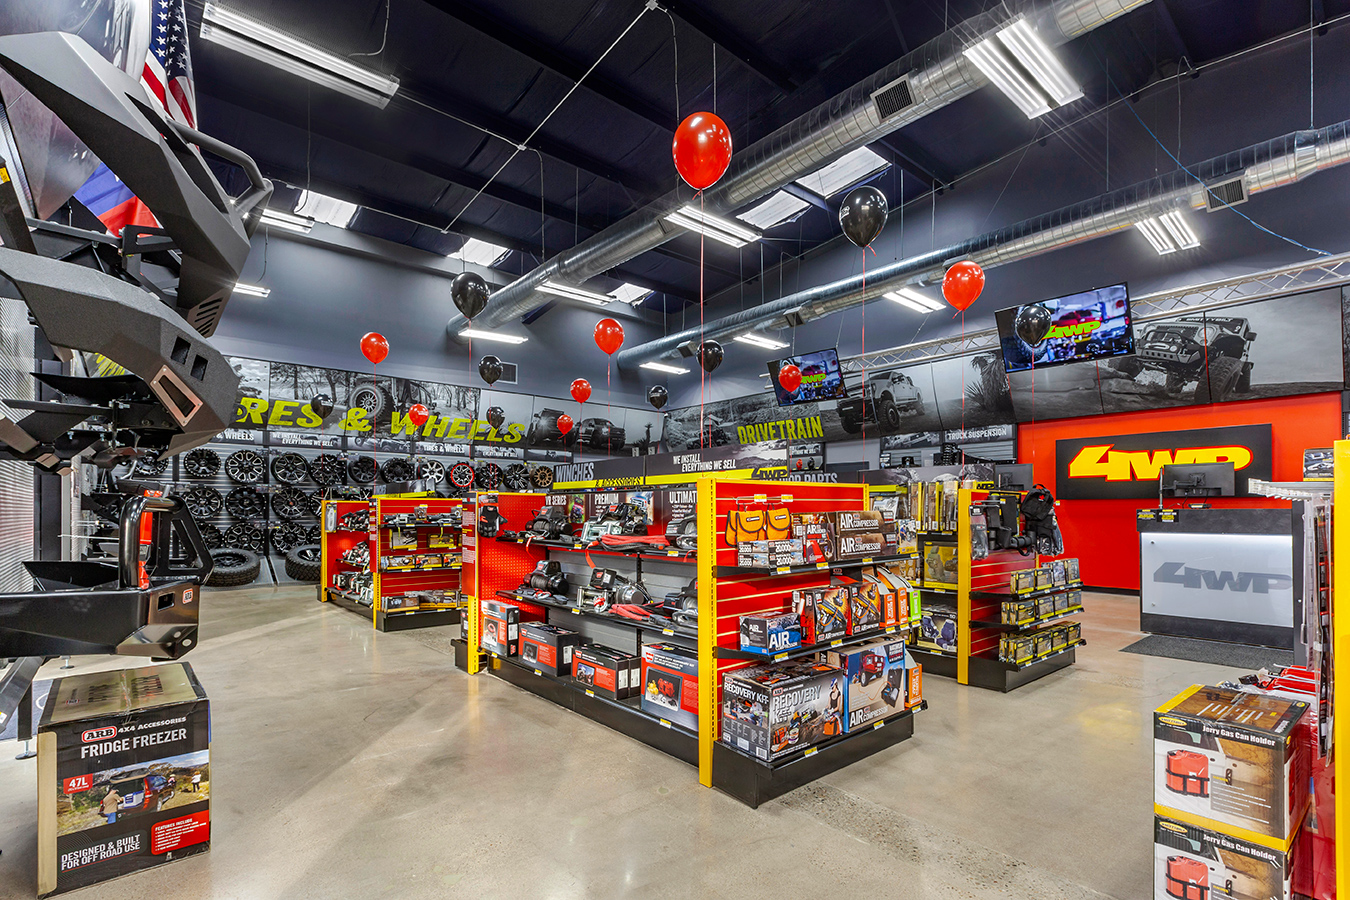 Interior View of 4WP Store During Grand Opening